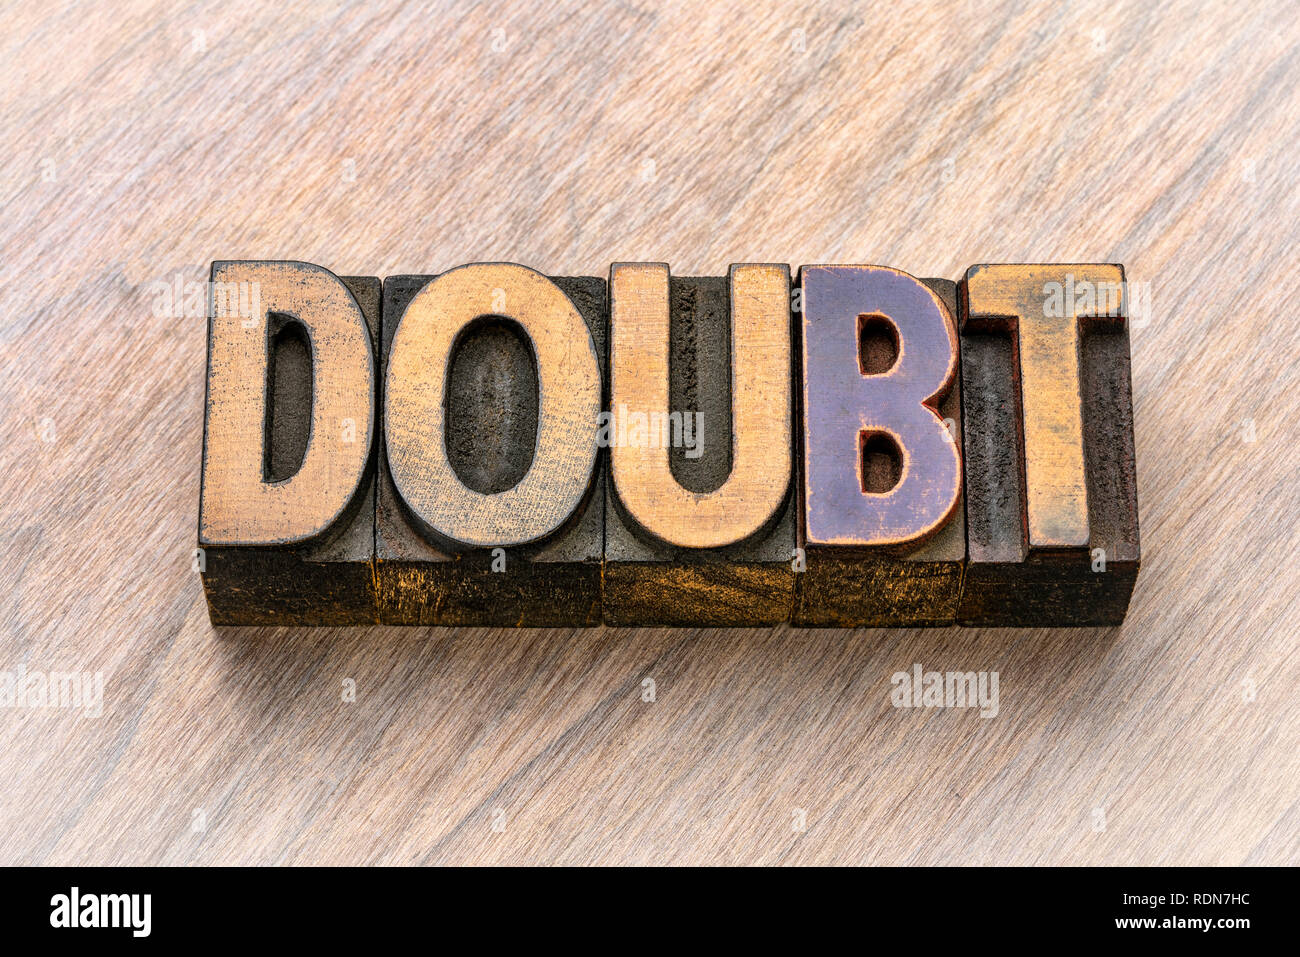 doubt word in vintage letterpress wood type printing blocks Stock Photo